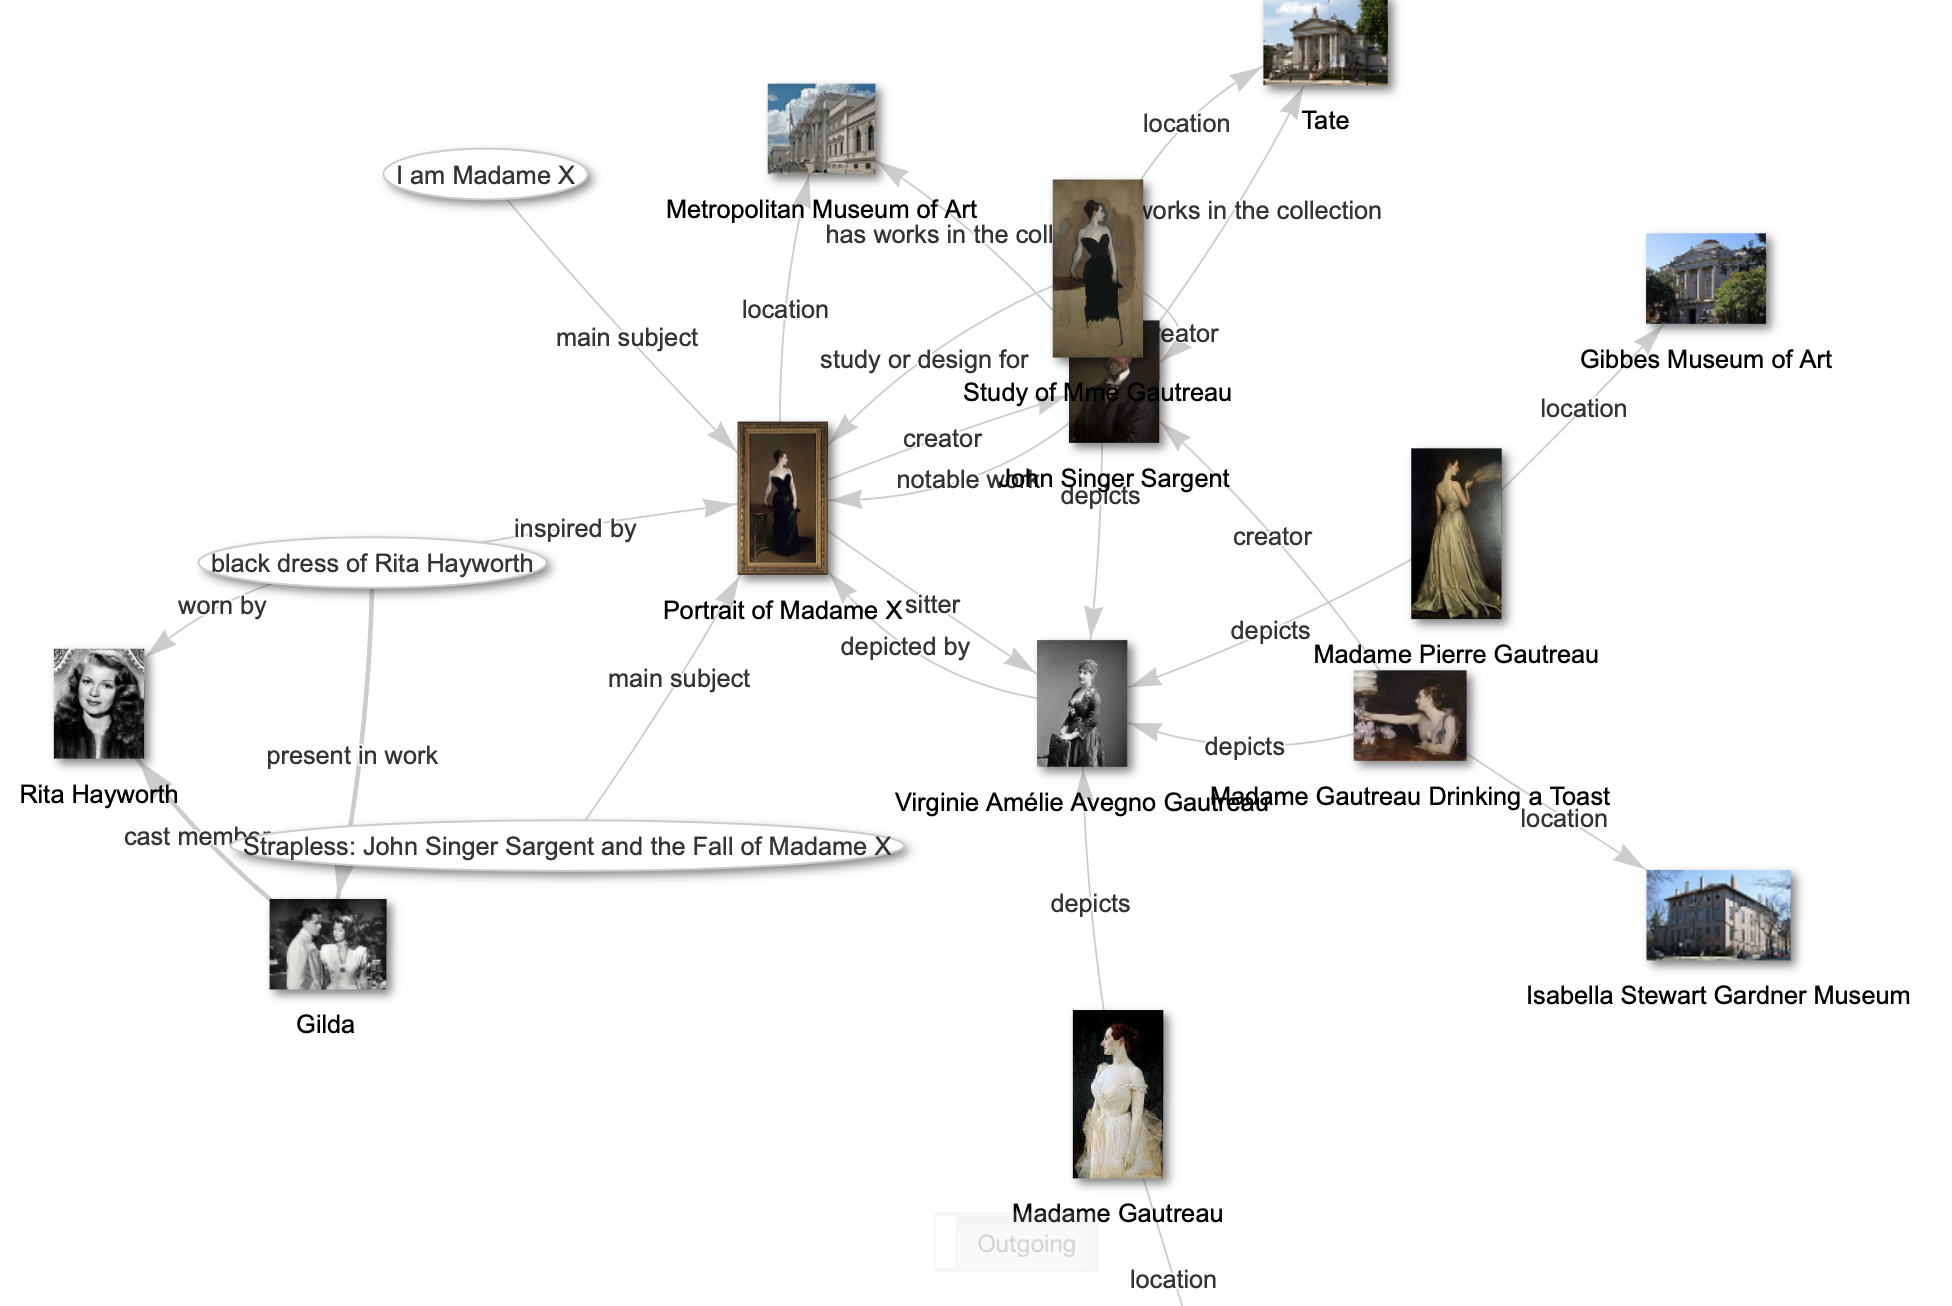 Screenshot of Wikidata linking museum collections starting with a Portrait of Madame X by John Singer Sargent from The Met's collections', which went on to inspire a dress worn by Rita Hayworth